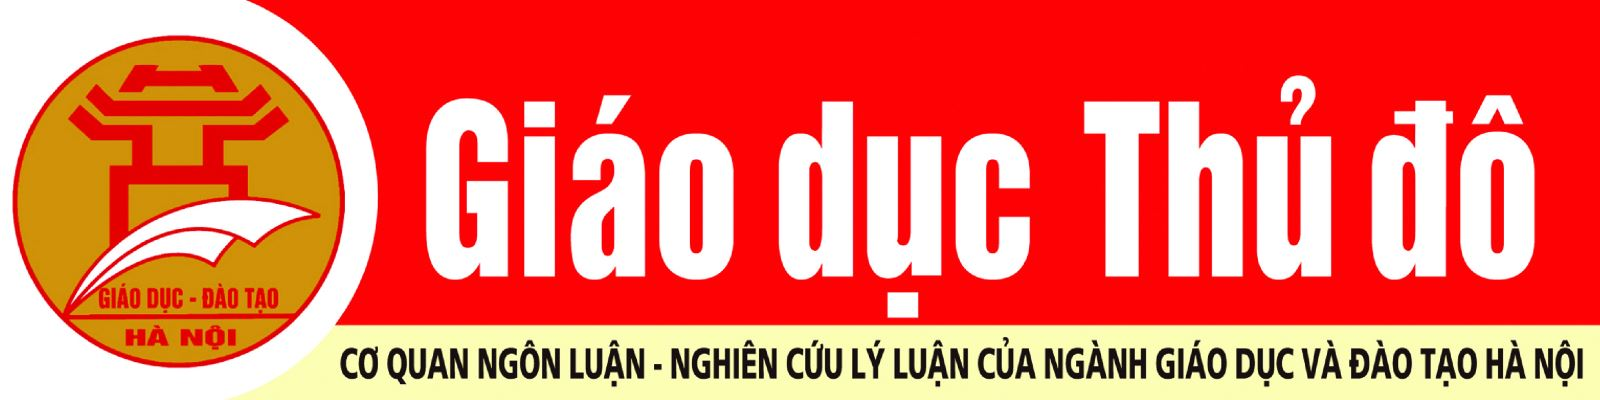 http://giaoducthudo.com.vn/